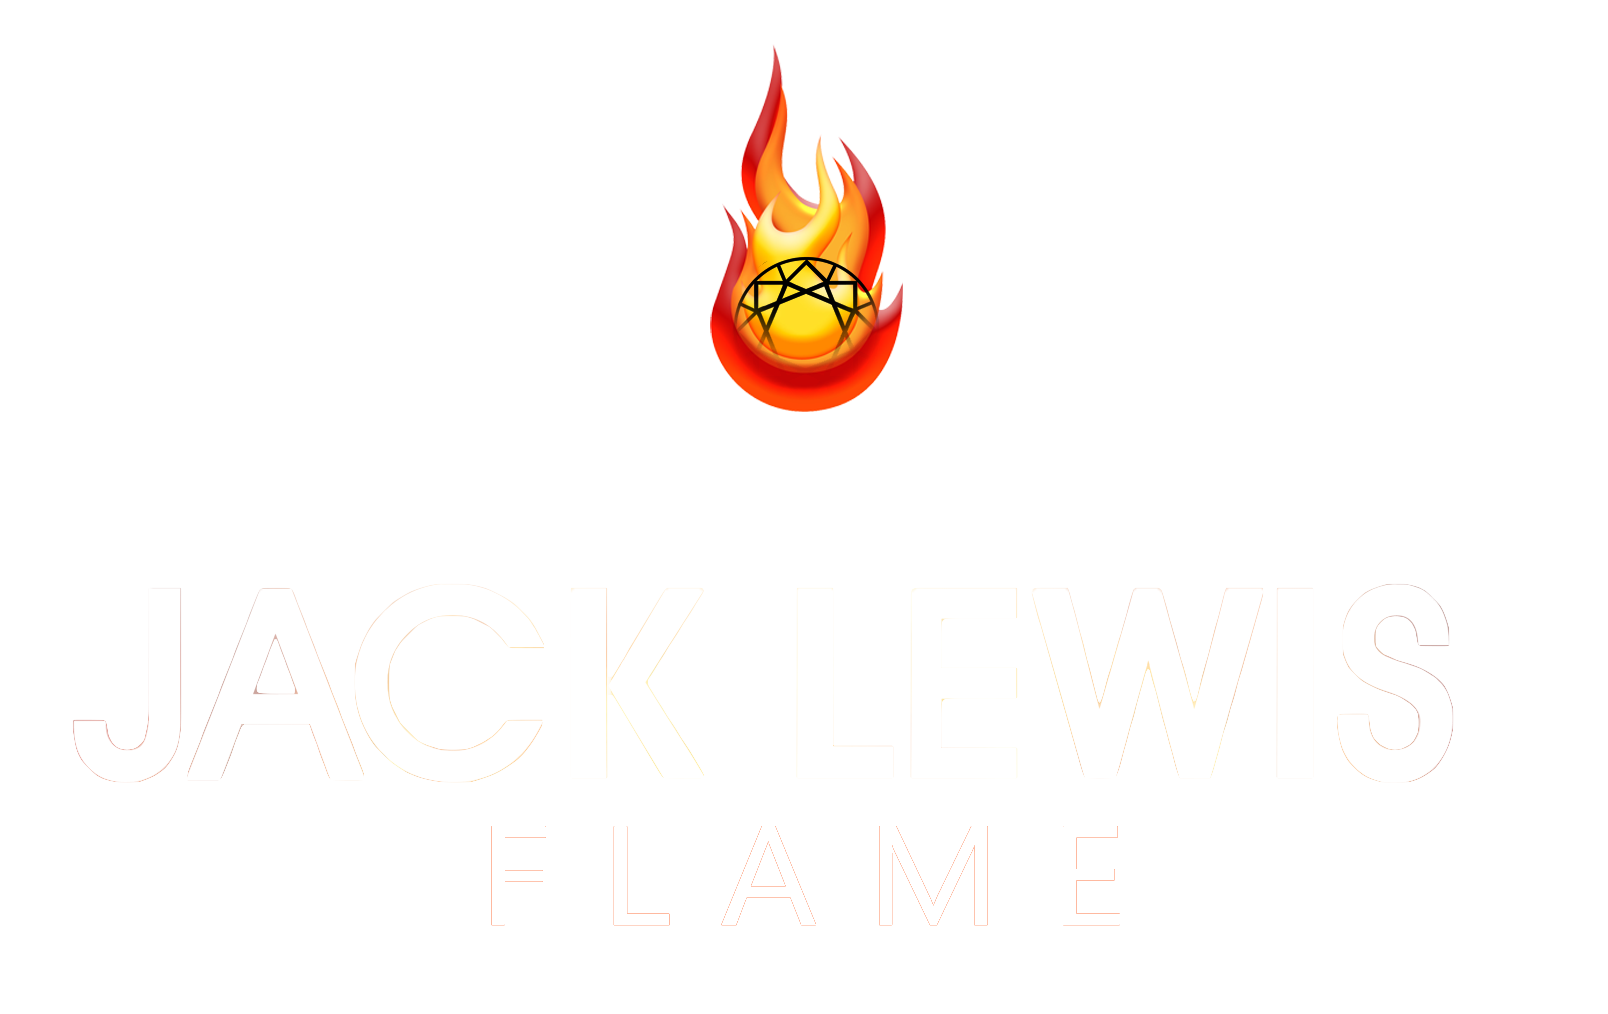 white Jack Lewis logo with the word Flame beneath it and the diamond set in cartoon flames of yellow and red.